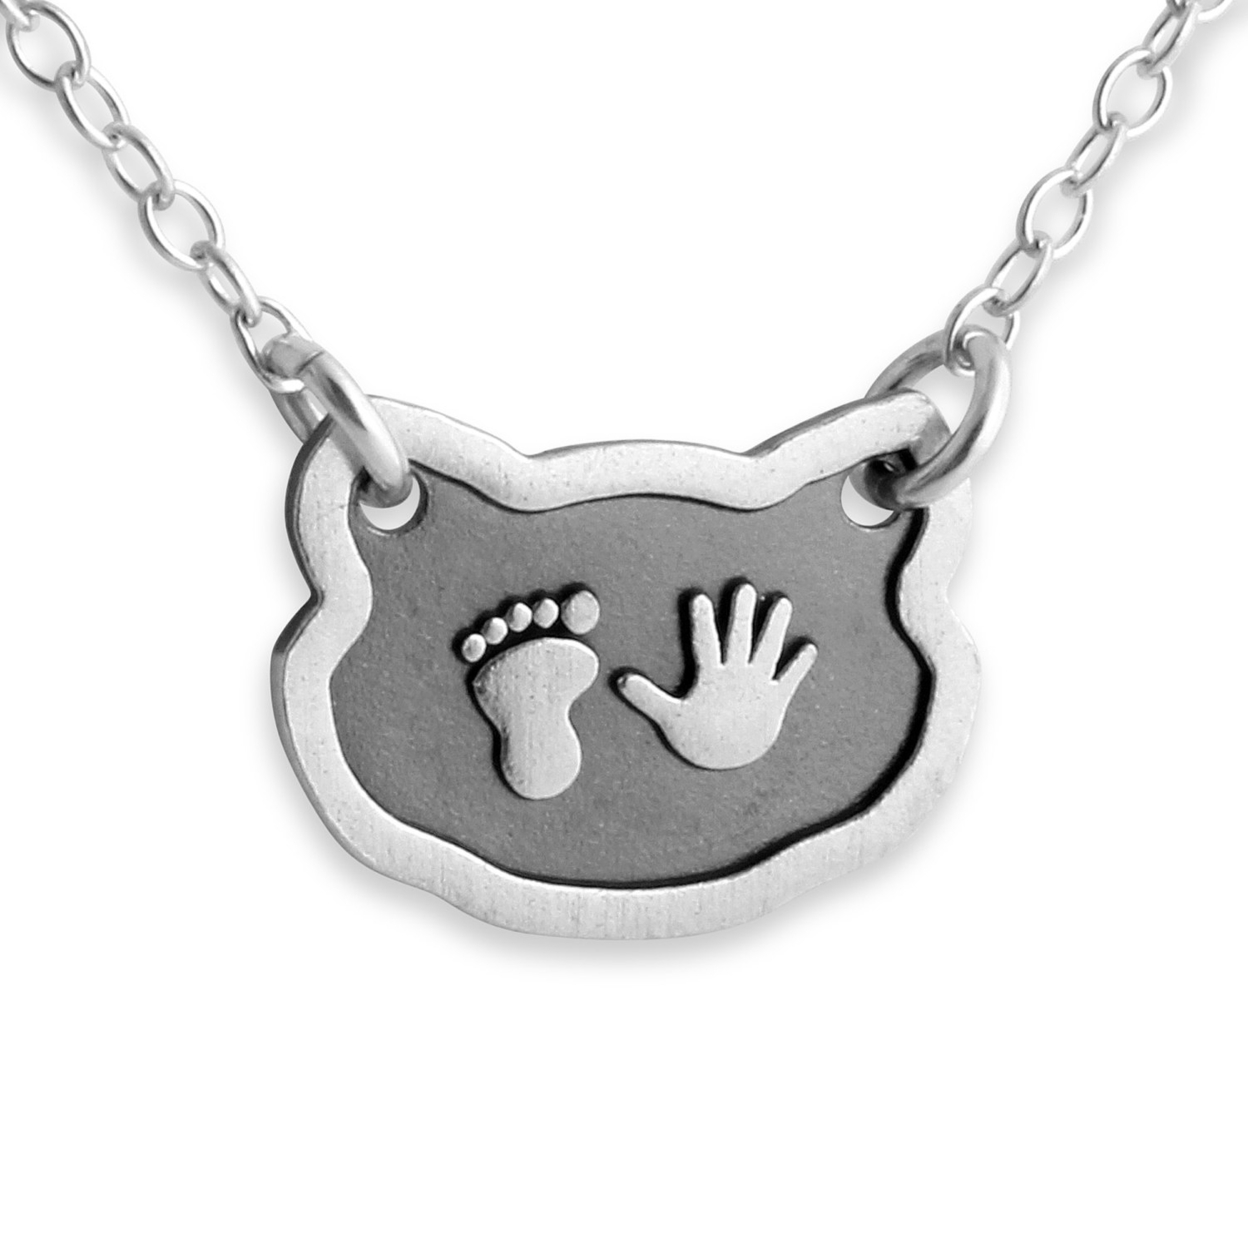 Baby Hand And Foot Print Newborn Feline Shape Two-tone Charm Pendant Jump Ring Necklace #925 Sterling Silver #azaggi N0276s 12 Child